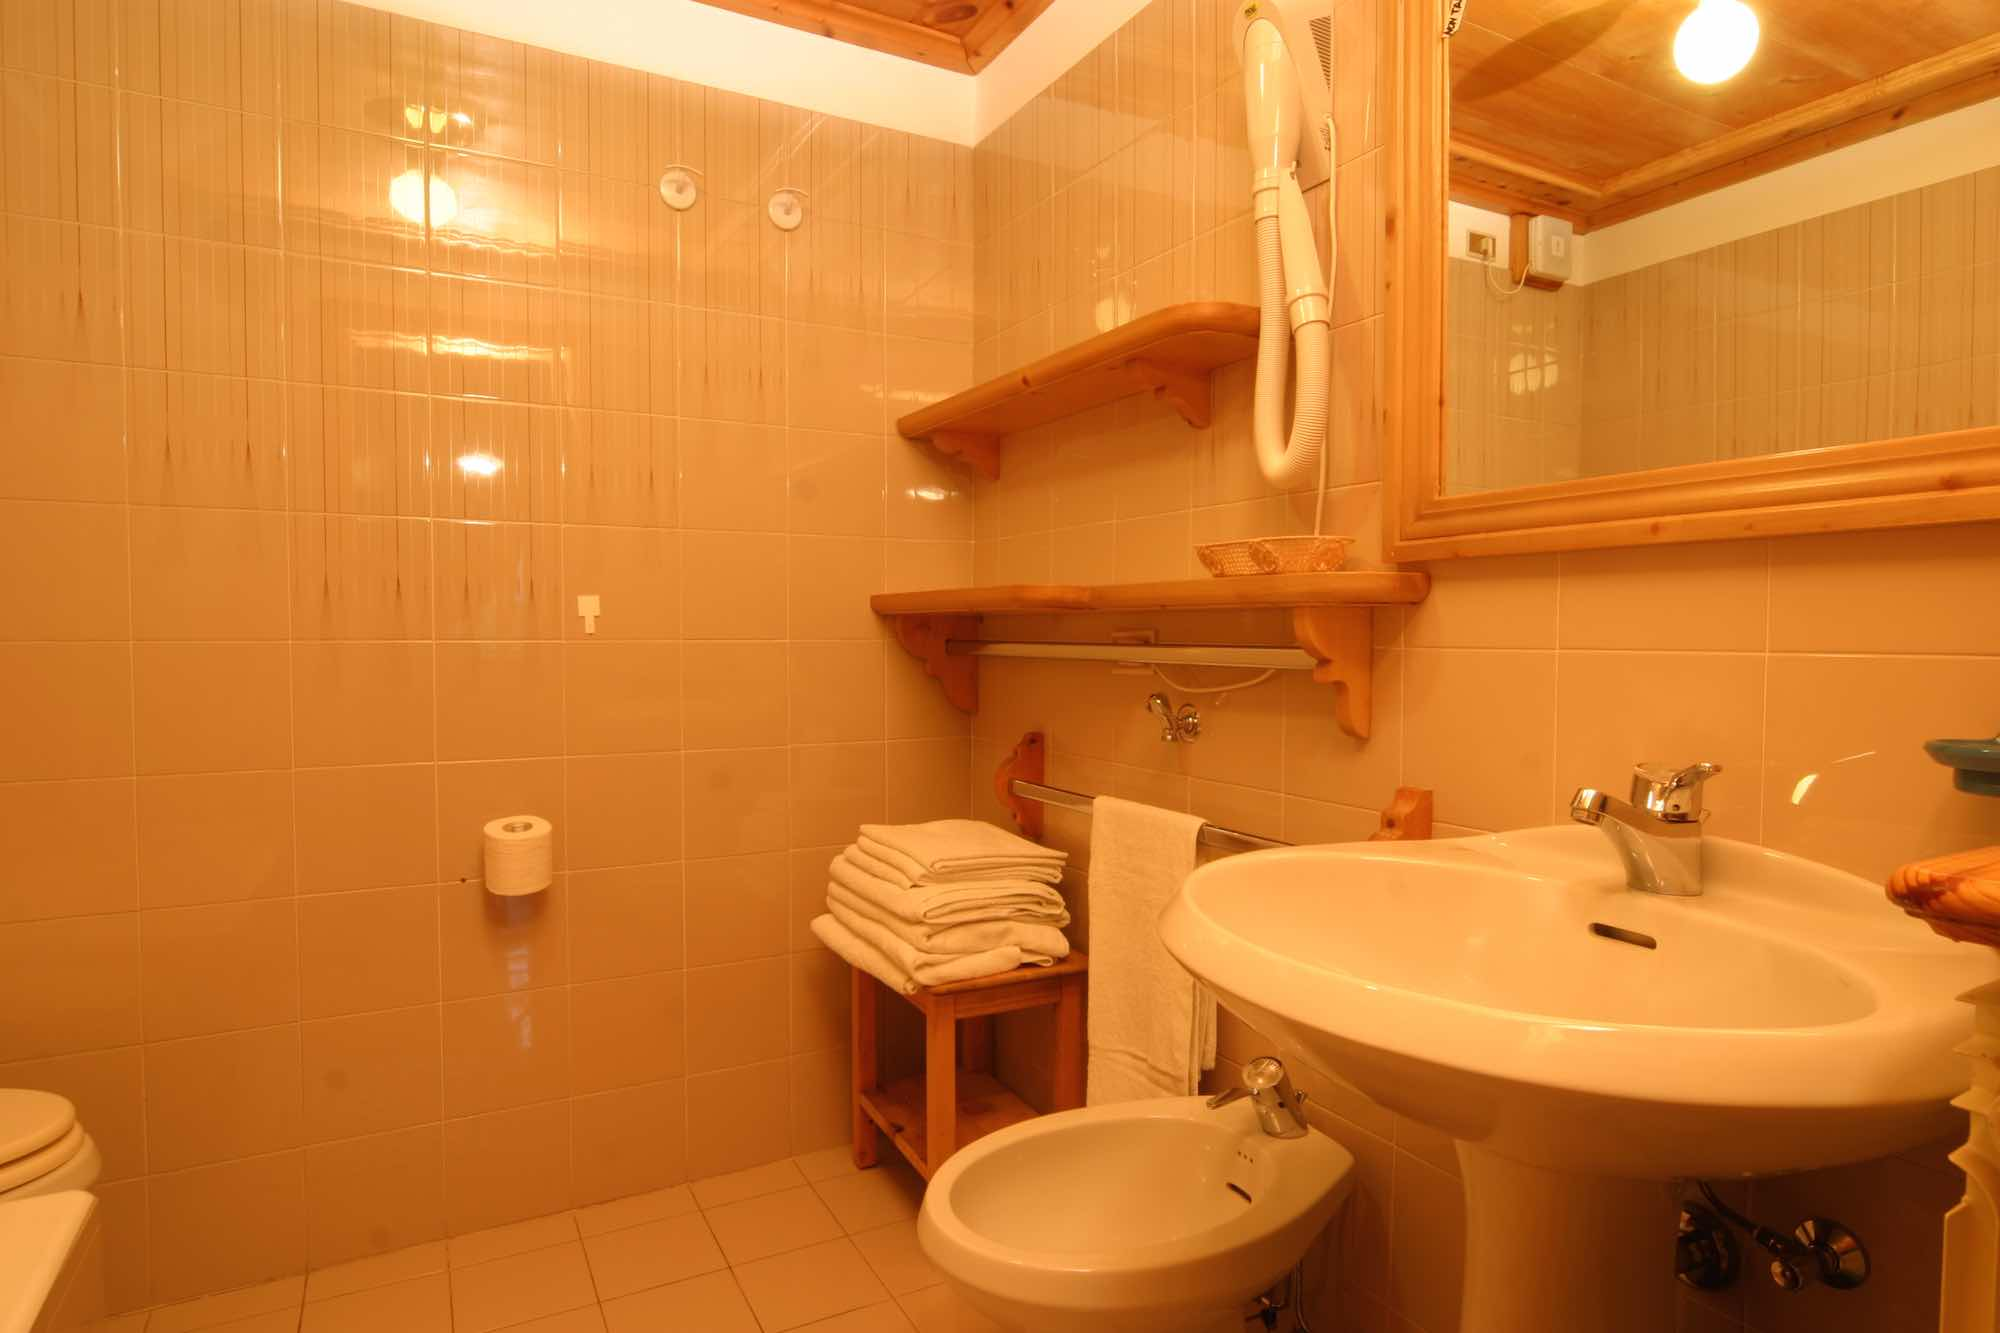 Bait da Borch - Via Saroch N.1430/f, Livigno 23041 - Apartment - Appartamento Vetta 5